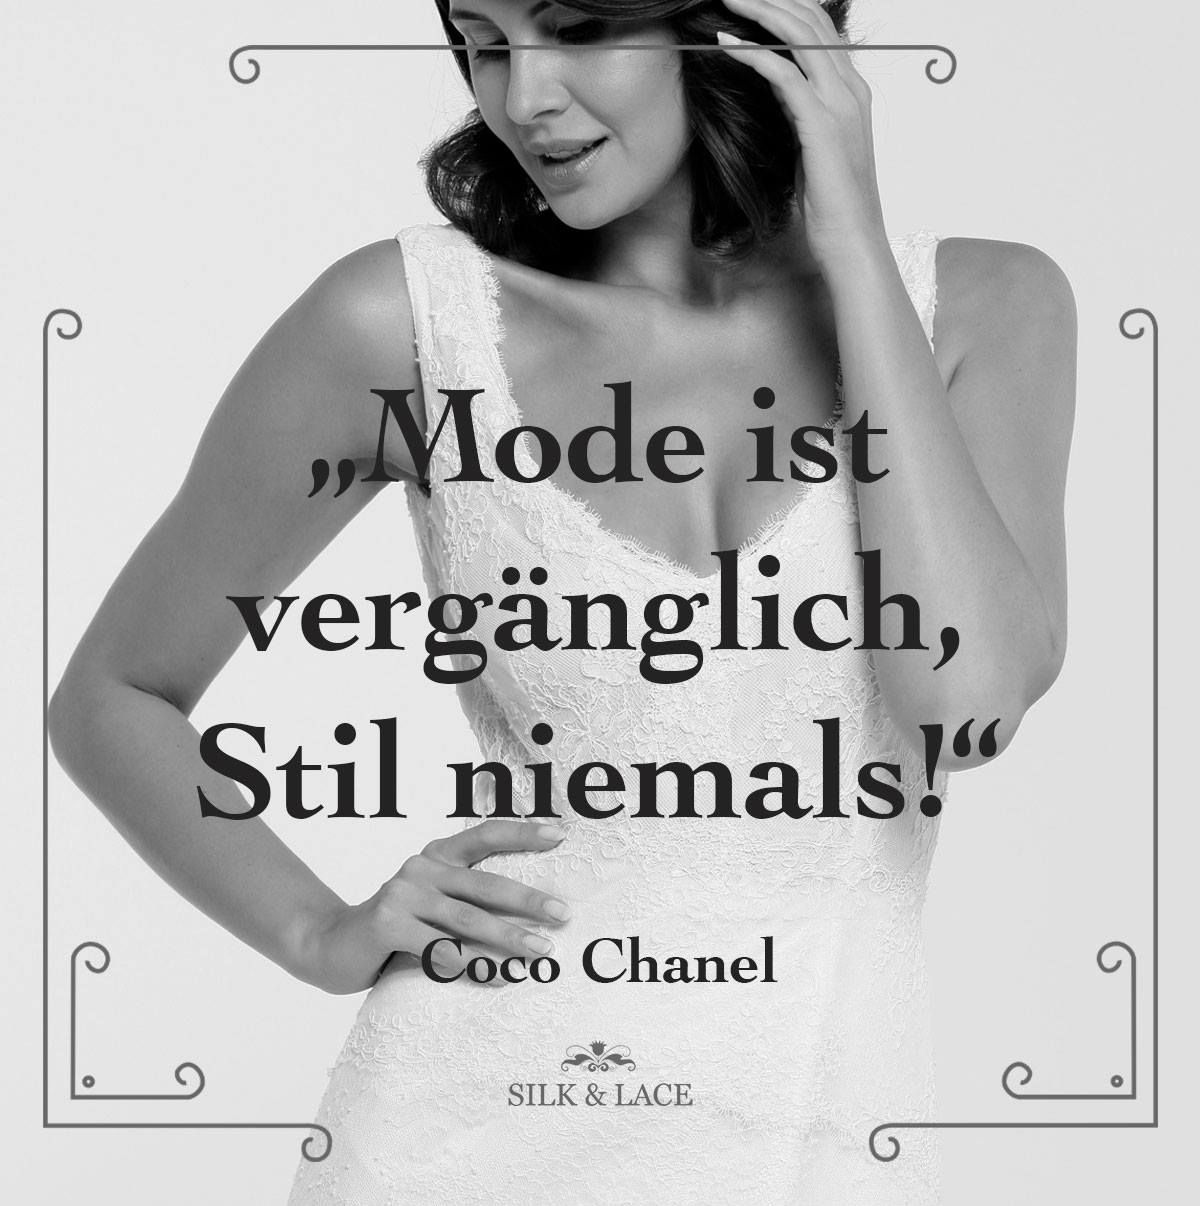 true spruch wahr stil mode zitate coco chanel. Black Bedroom Furniture Sets. Home Design Ideas